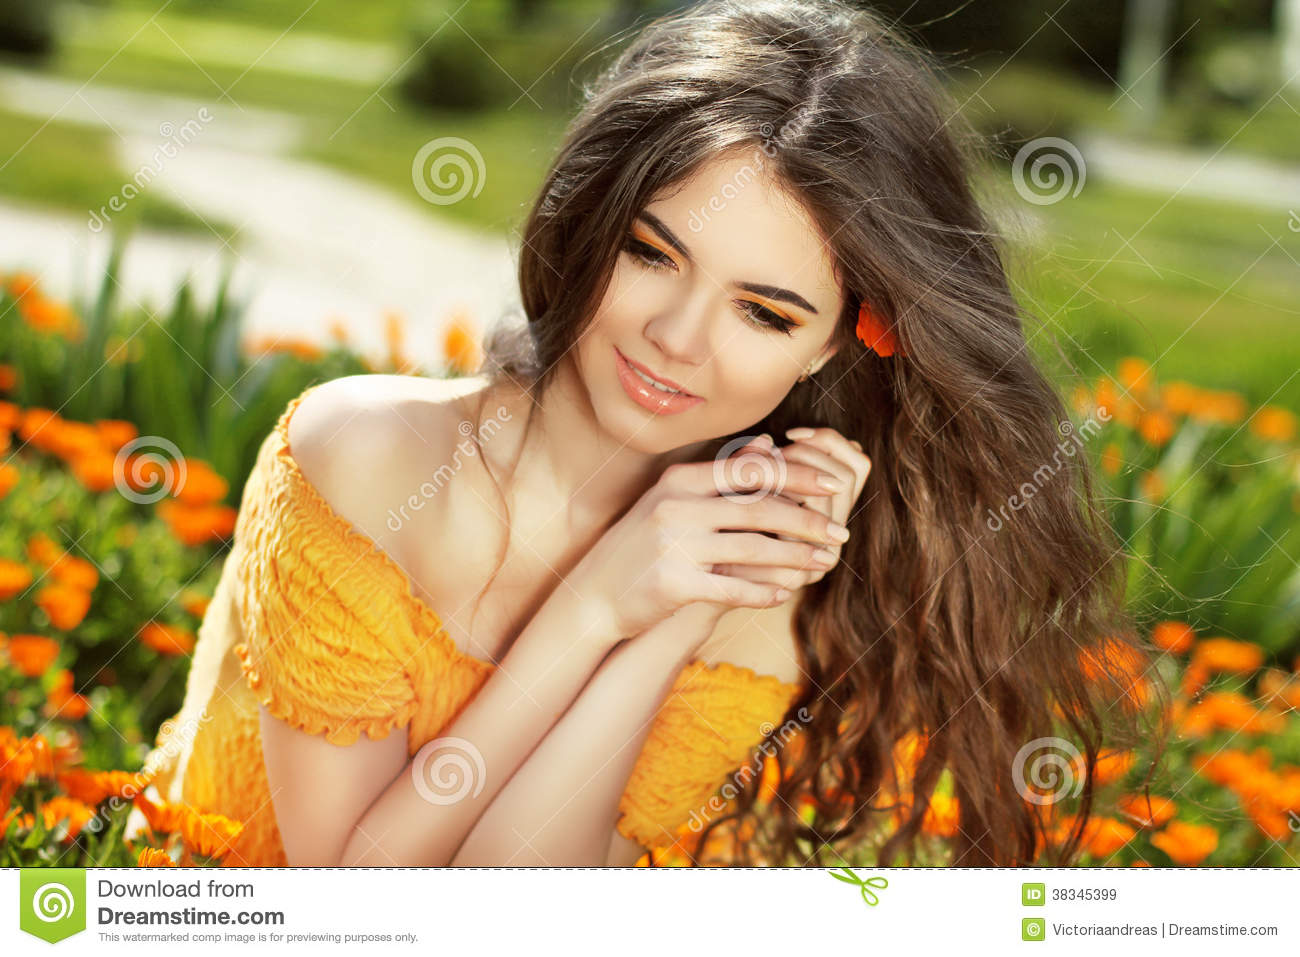 124 209 Woman Enjoying Nature Photos Free Royalty Free Stock Photos From Dreamstime